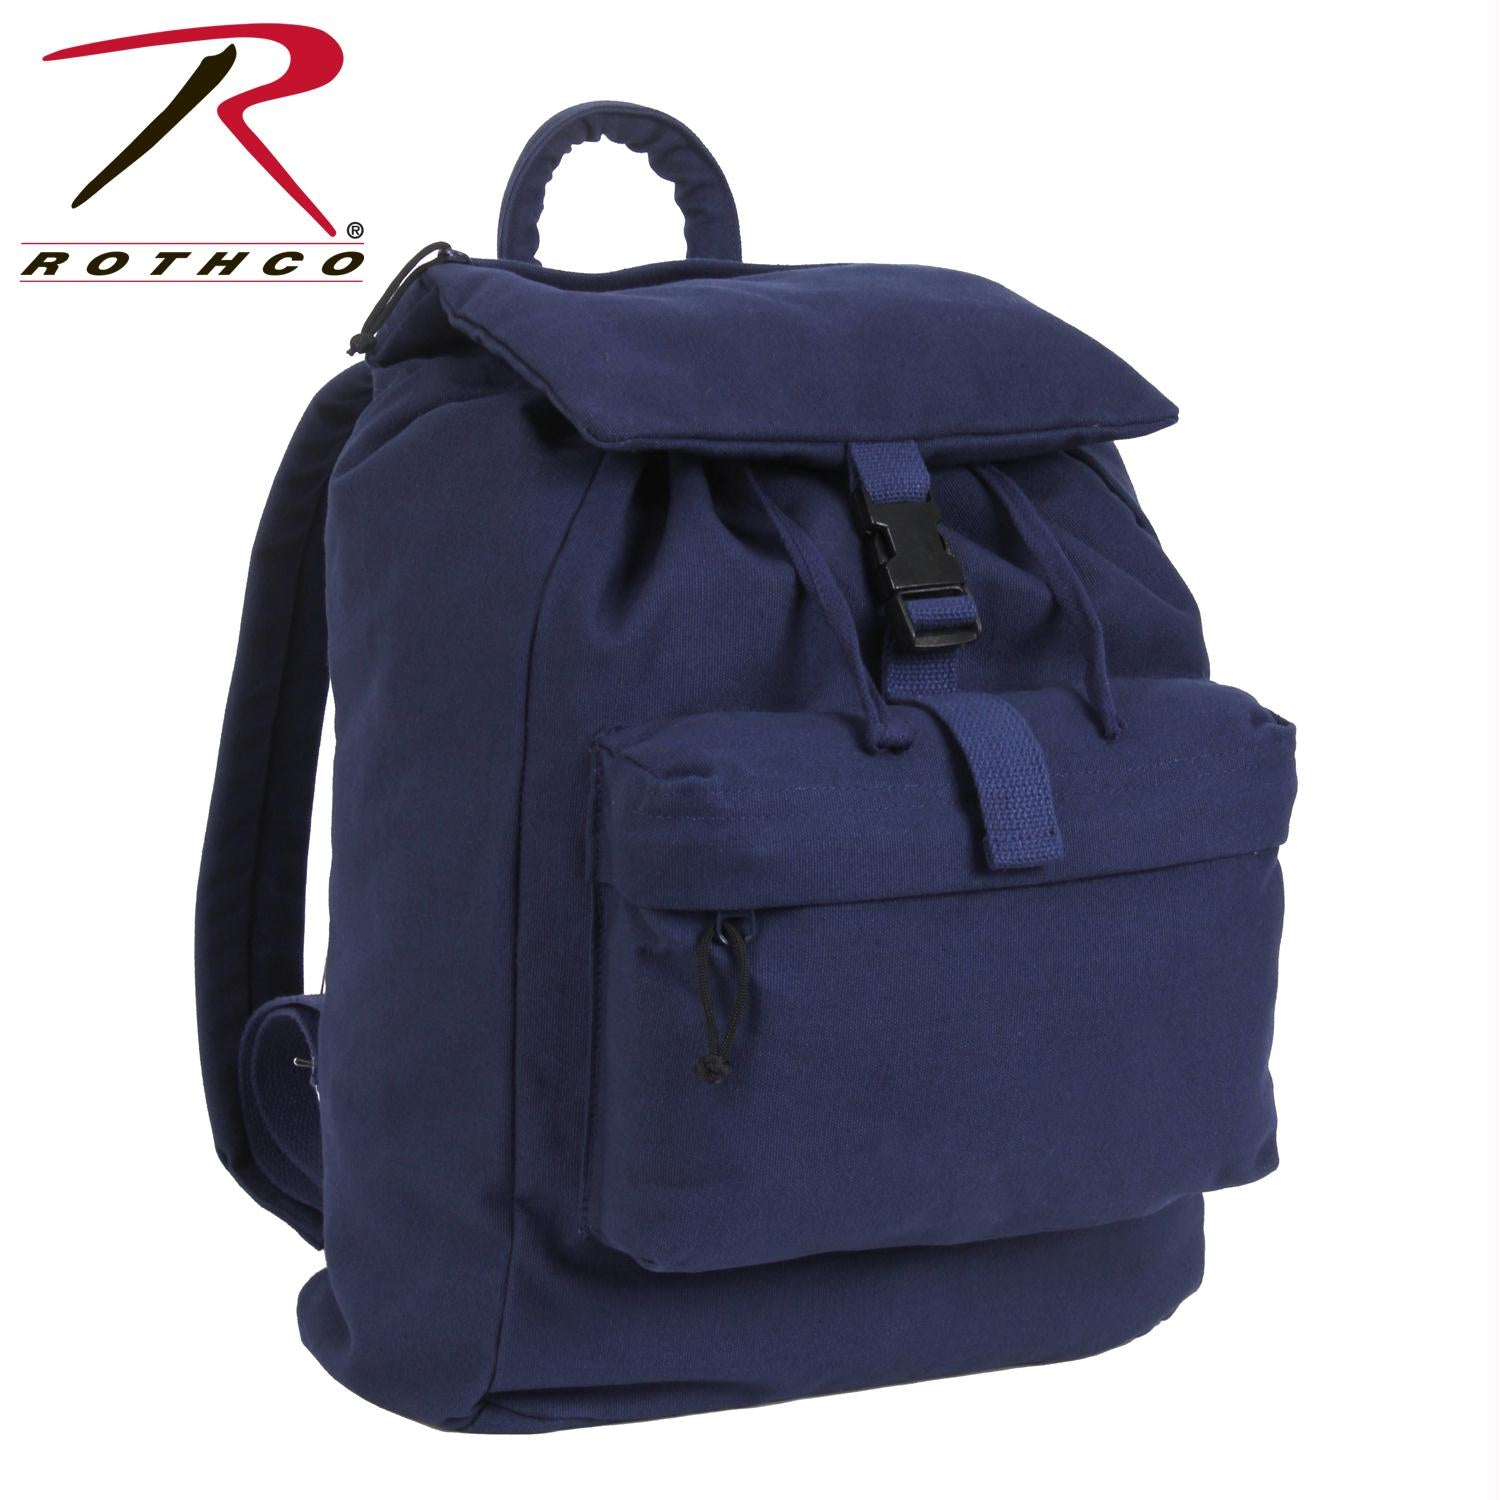 Rothco Canvas Daypack - Navy Blue